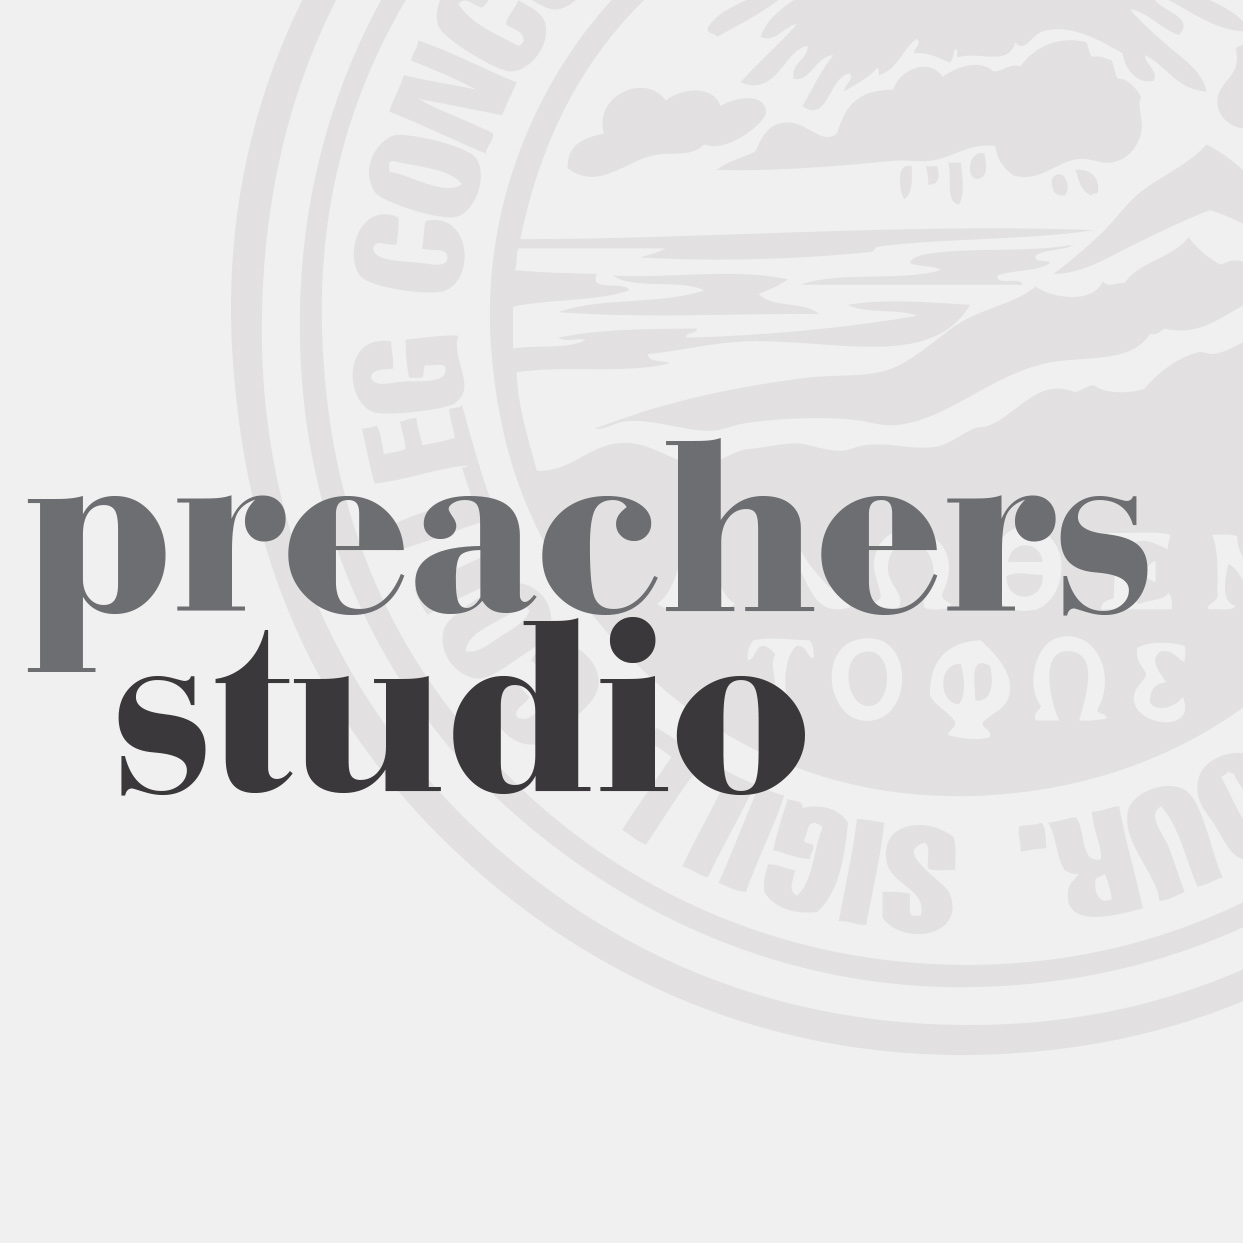 Preachers Studio: Peter Nafzger